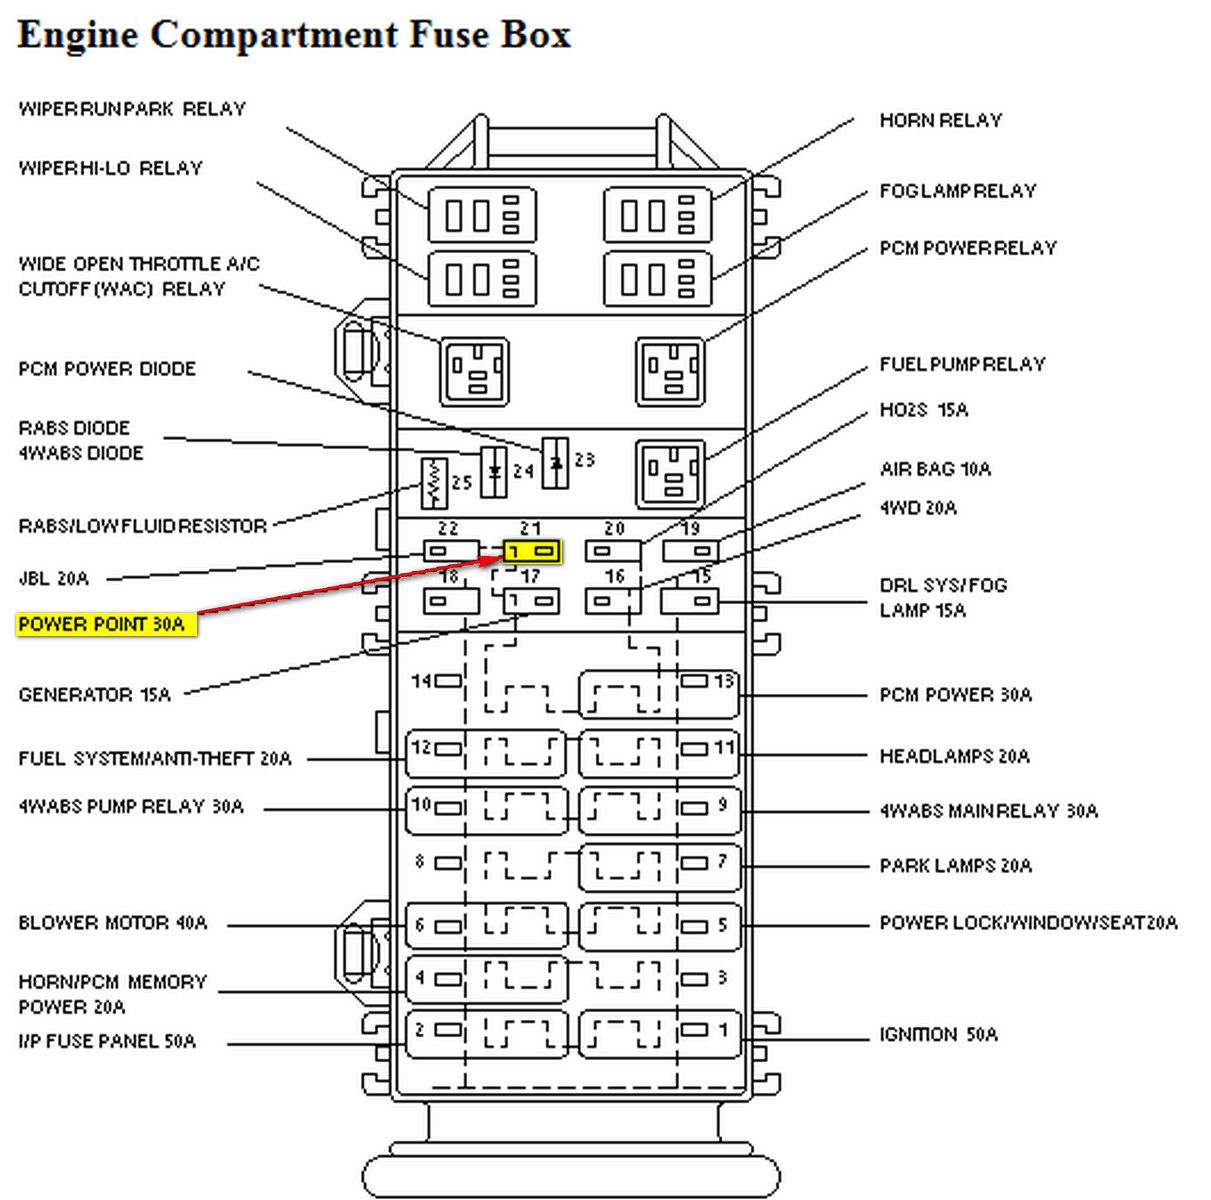 hight resolution of 2002 ford ranger fuse diagram 1997 ford ranger fuse box diagram 2004 ford ranger fuse box diagram